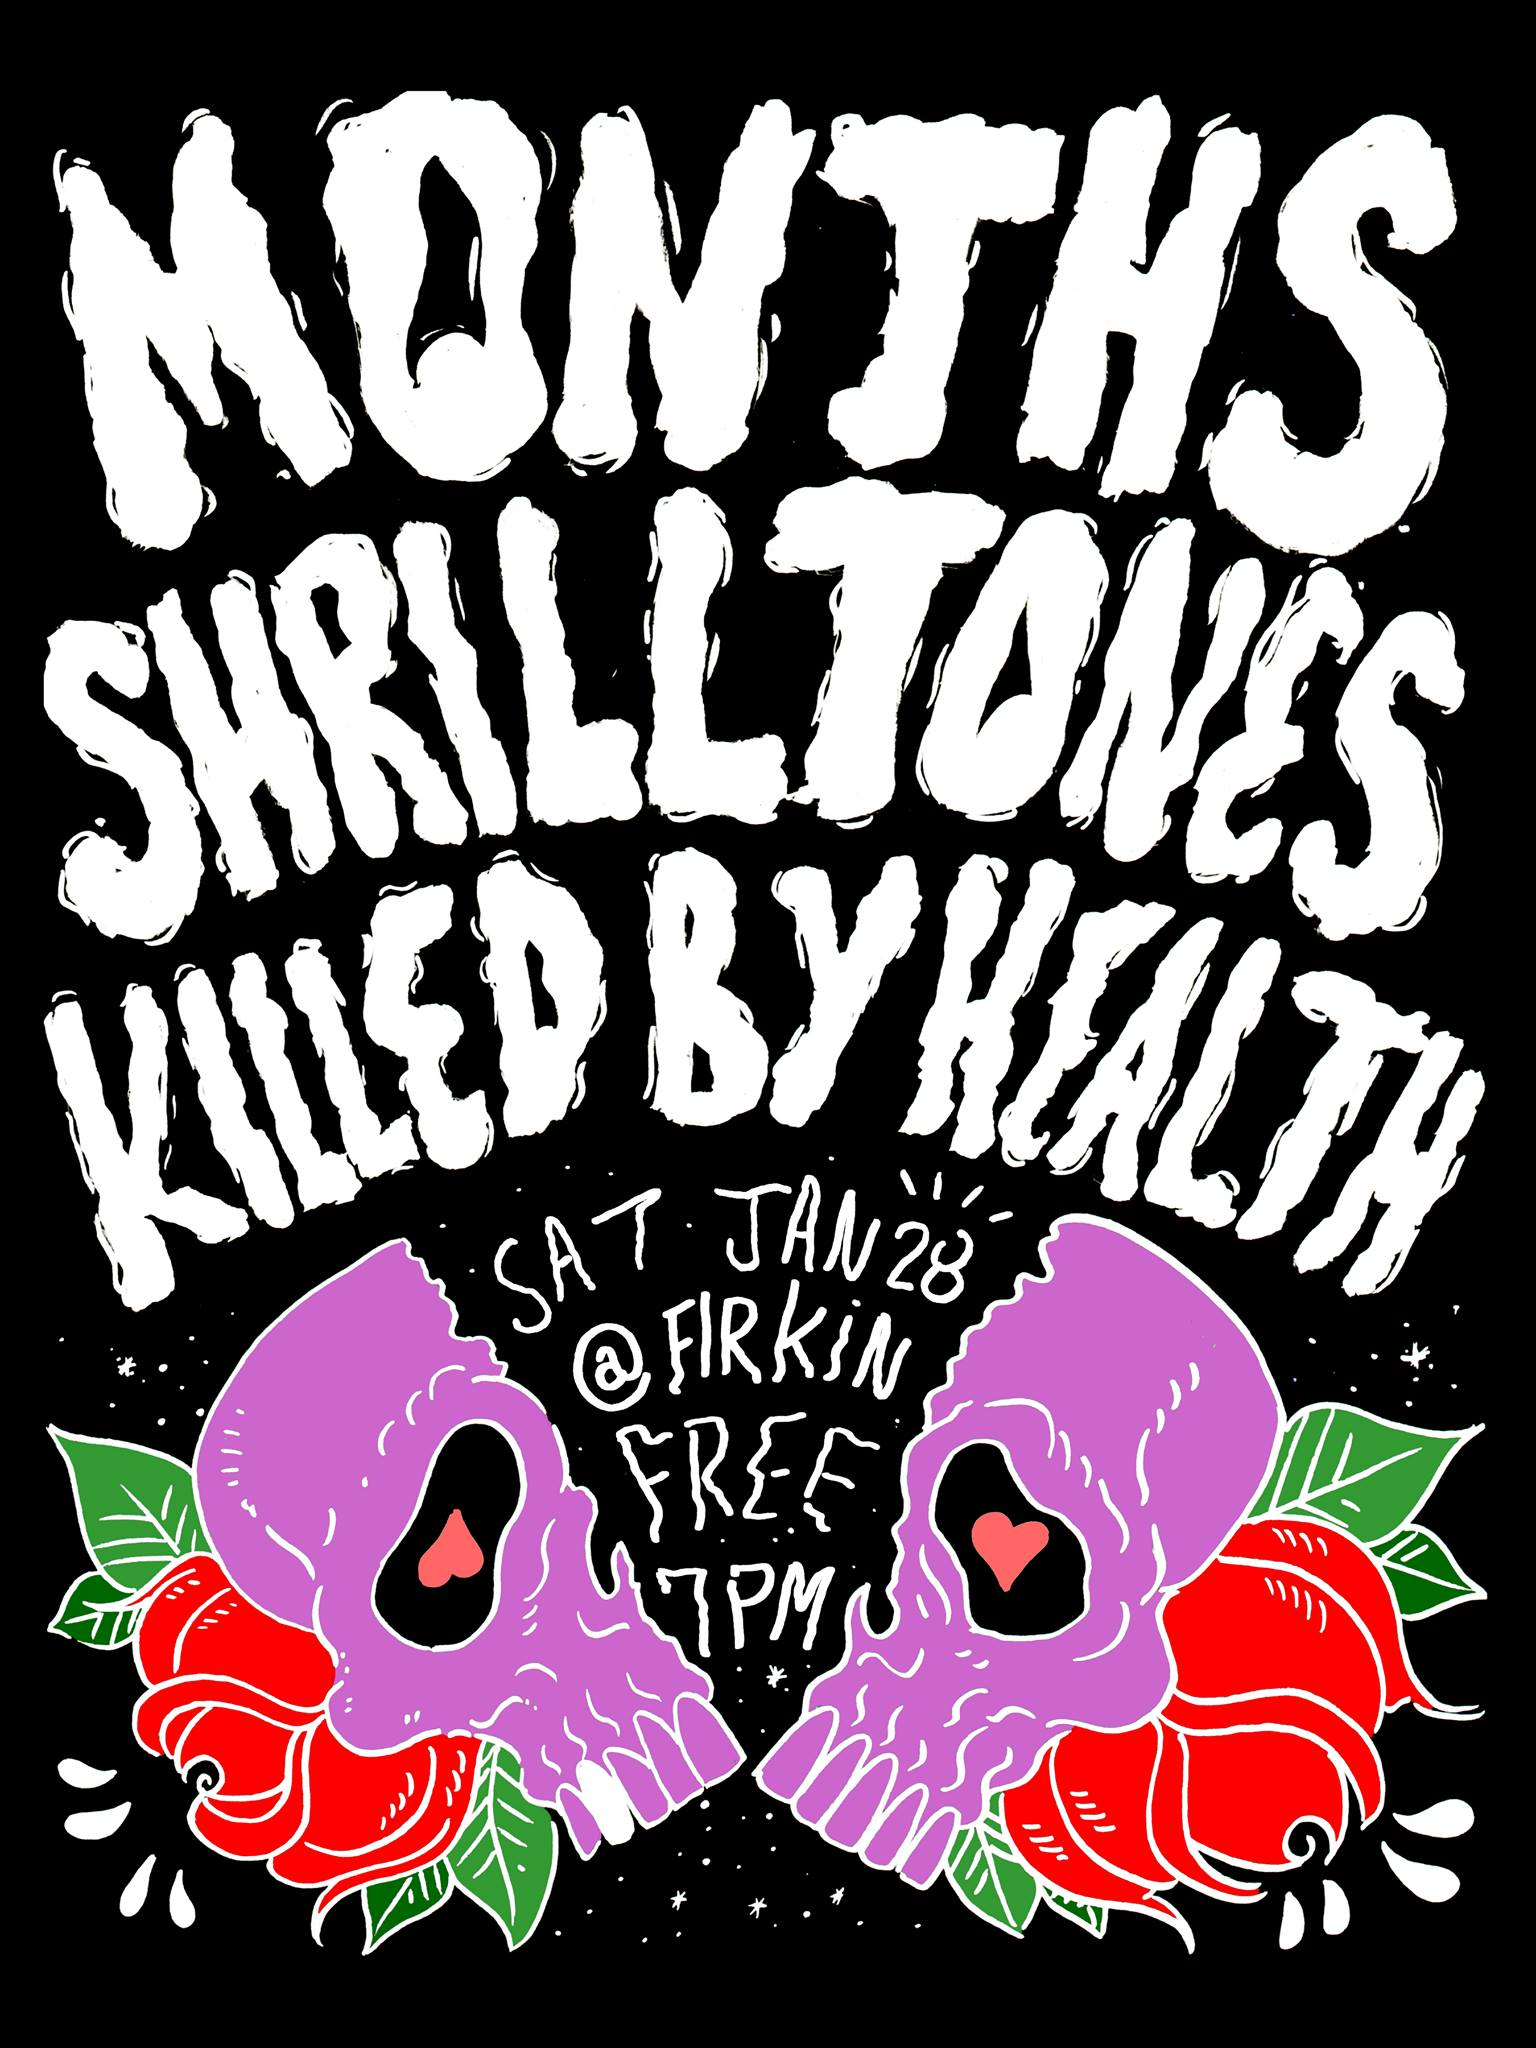 months with shrill tones and killed by health, firkin tavern, january 28 2017